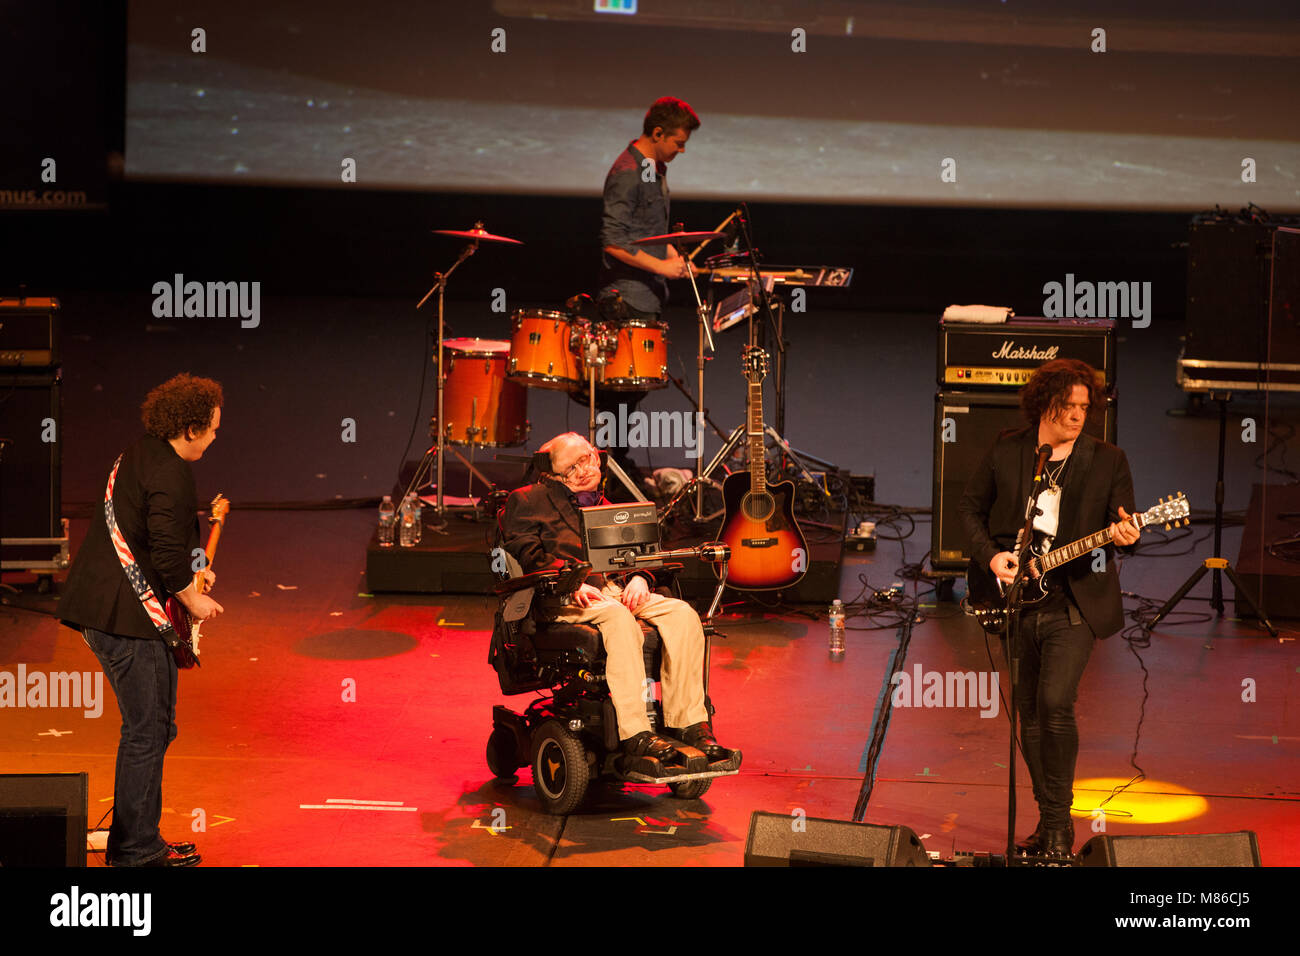 Prof. Stephen Hawking, British scientist, world renowned physicist on stage with Anathema, british rock group, playing Stock Photo